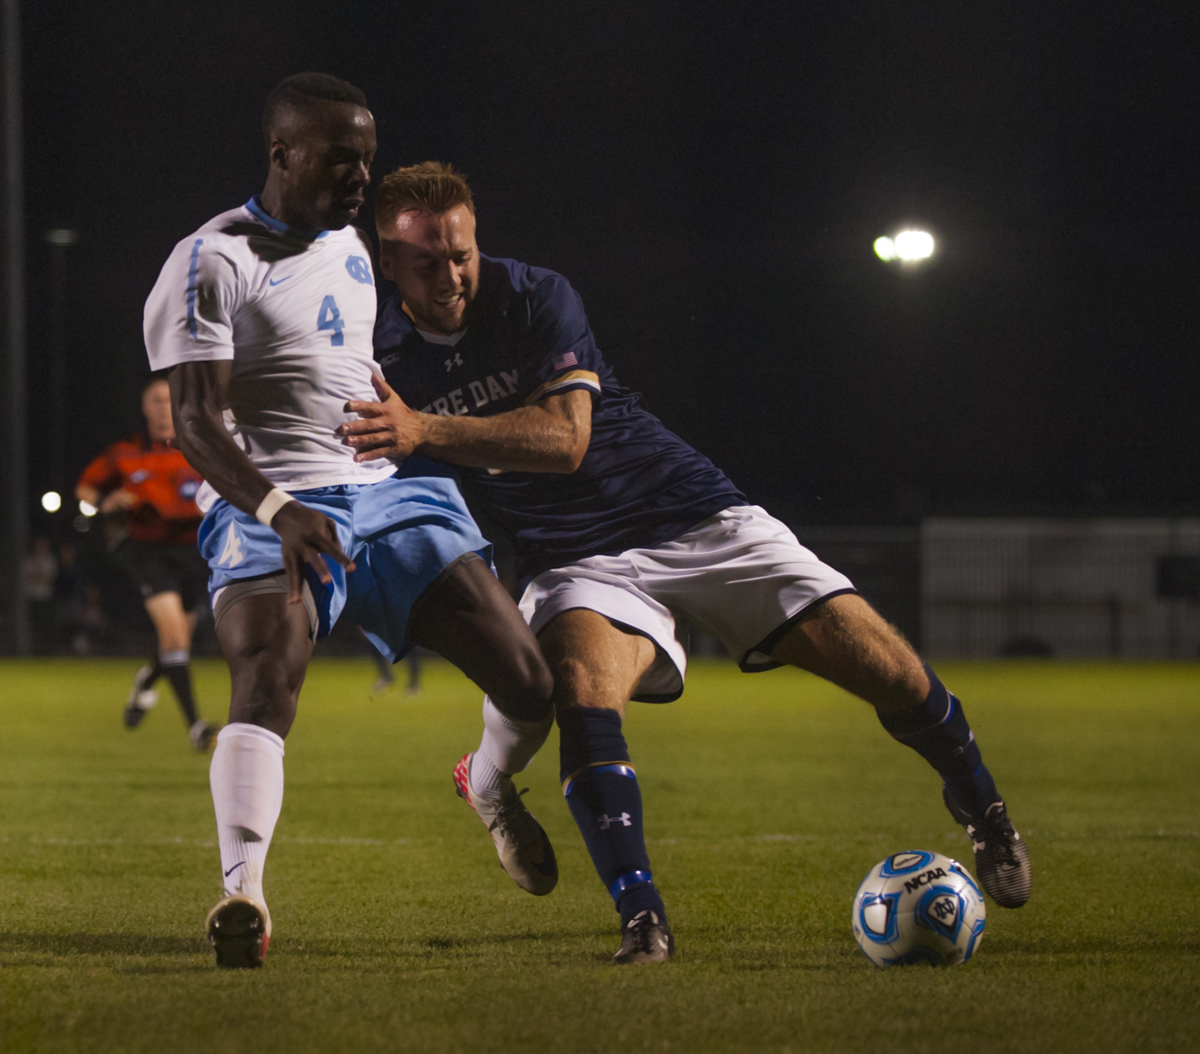 Irish senior forward Vince Cicciarelli fights for the ball with North Carolina senior defender Boyd            Okwuonu during Notre Dame's 2-0 win against the Tar Heels on Sept. 26 at Alumni Stadium.